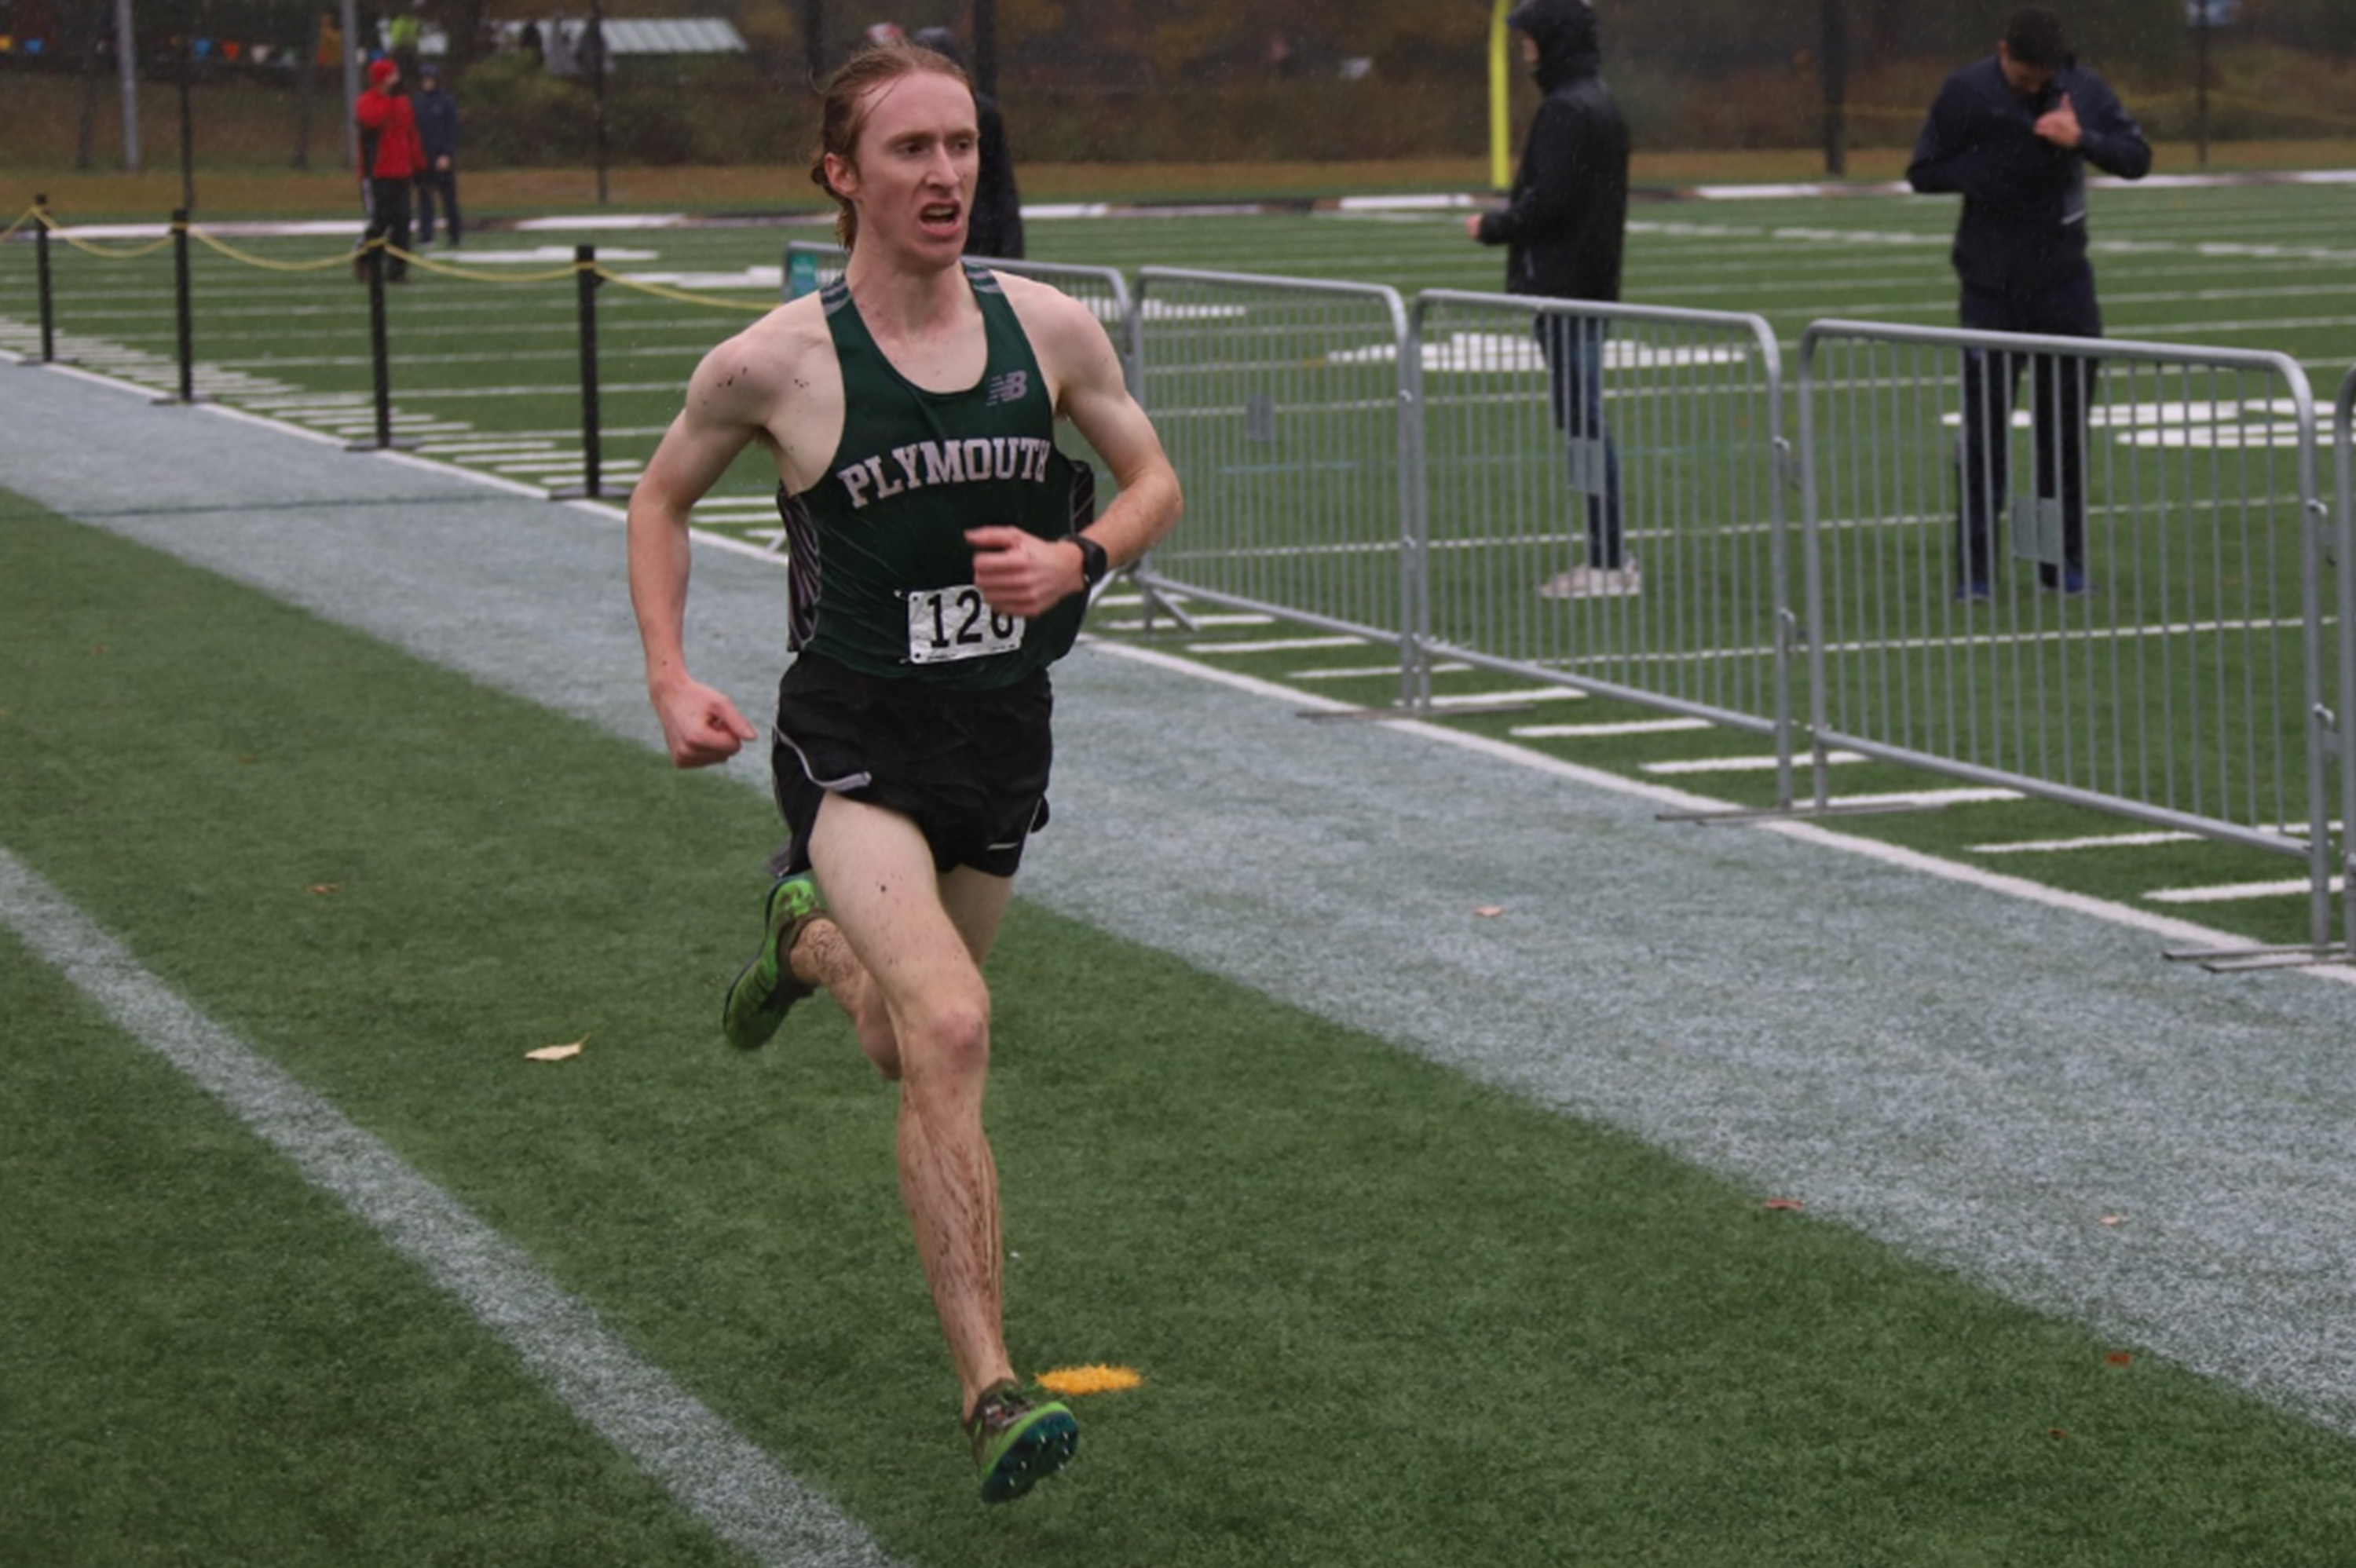 Sam Brunnette graduated as the most decorated distance runner in PSU history with four ALL-America honors and three LEC cross country runner of the year awards. He was voted PSU's Paul Arold Male Athlete of the Year for the third straight year.